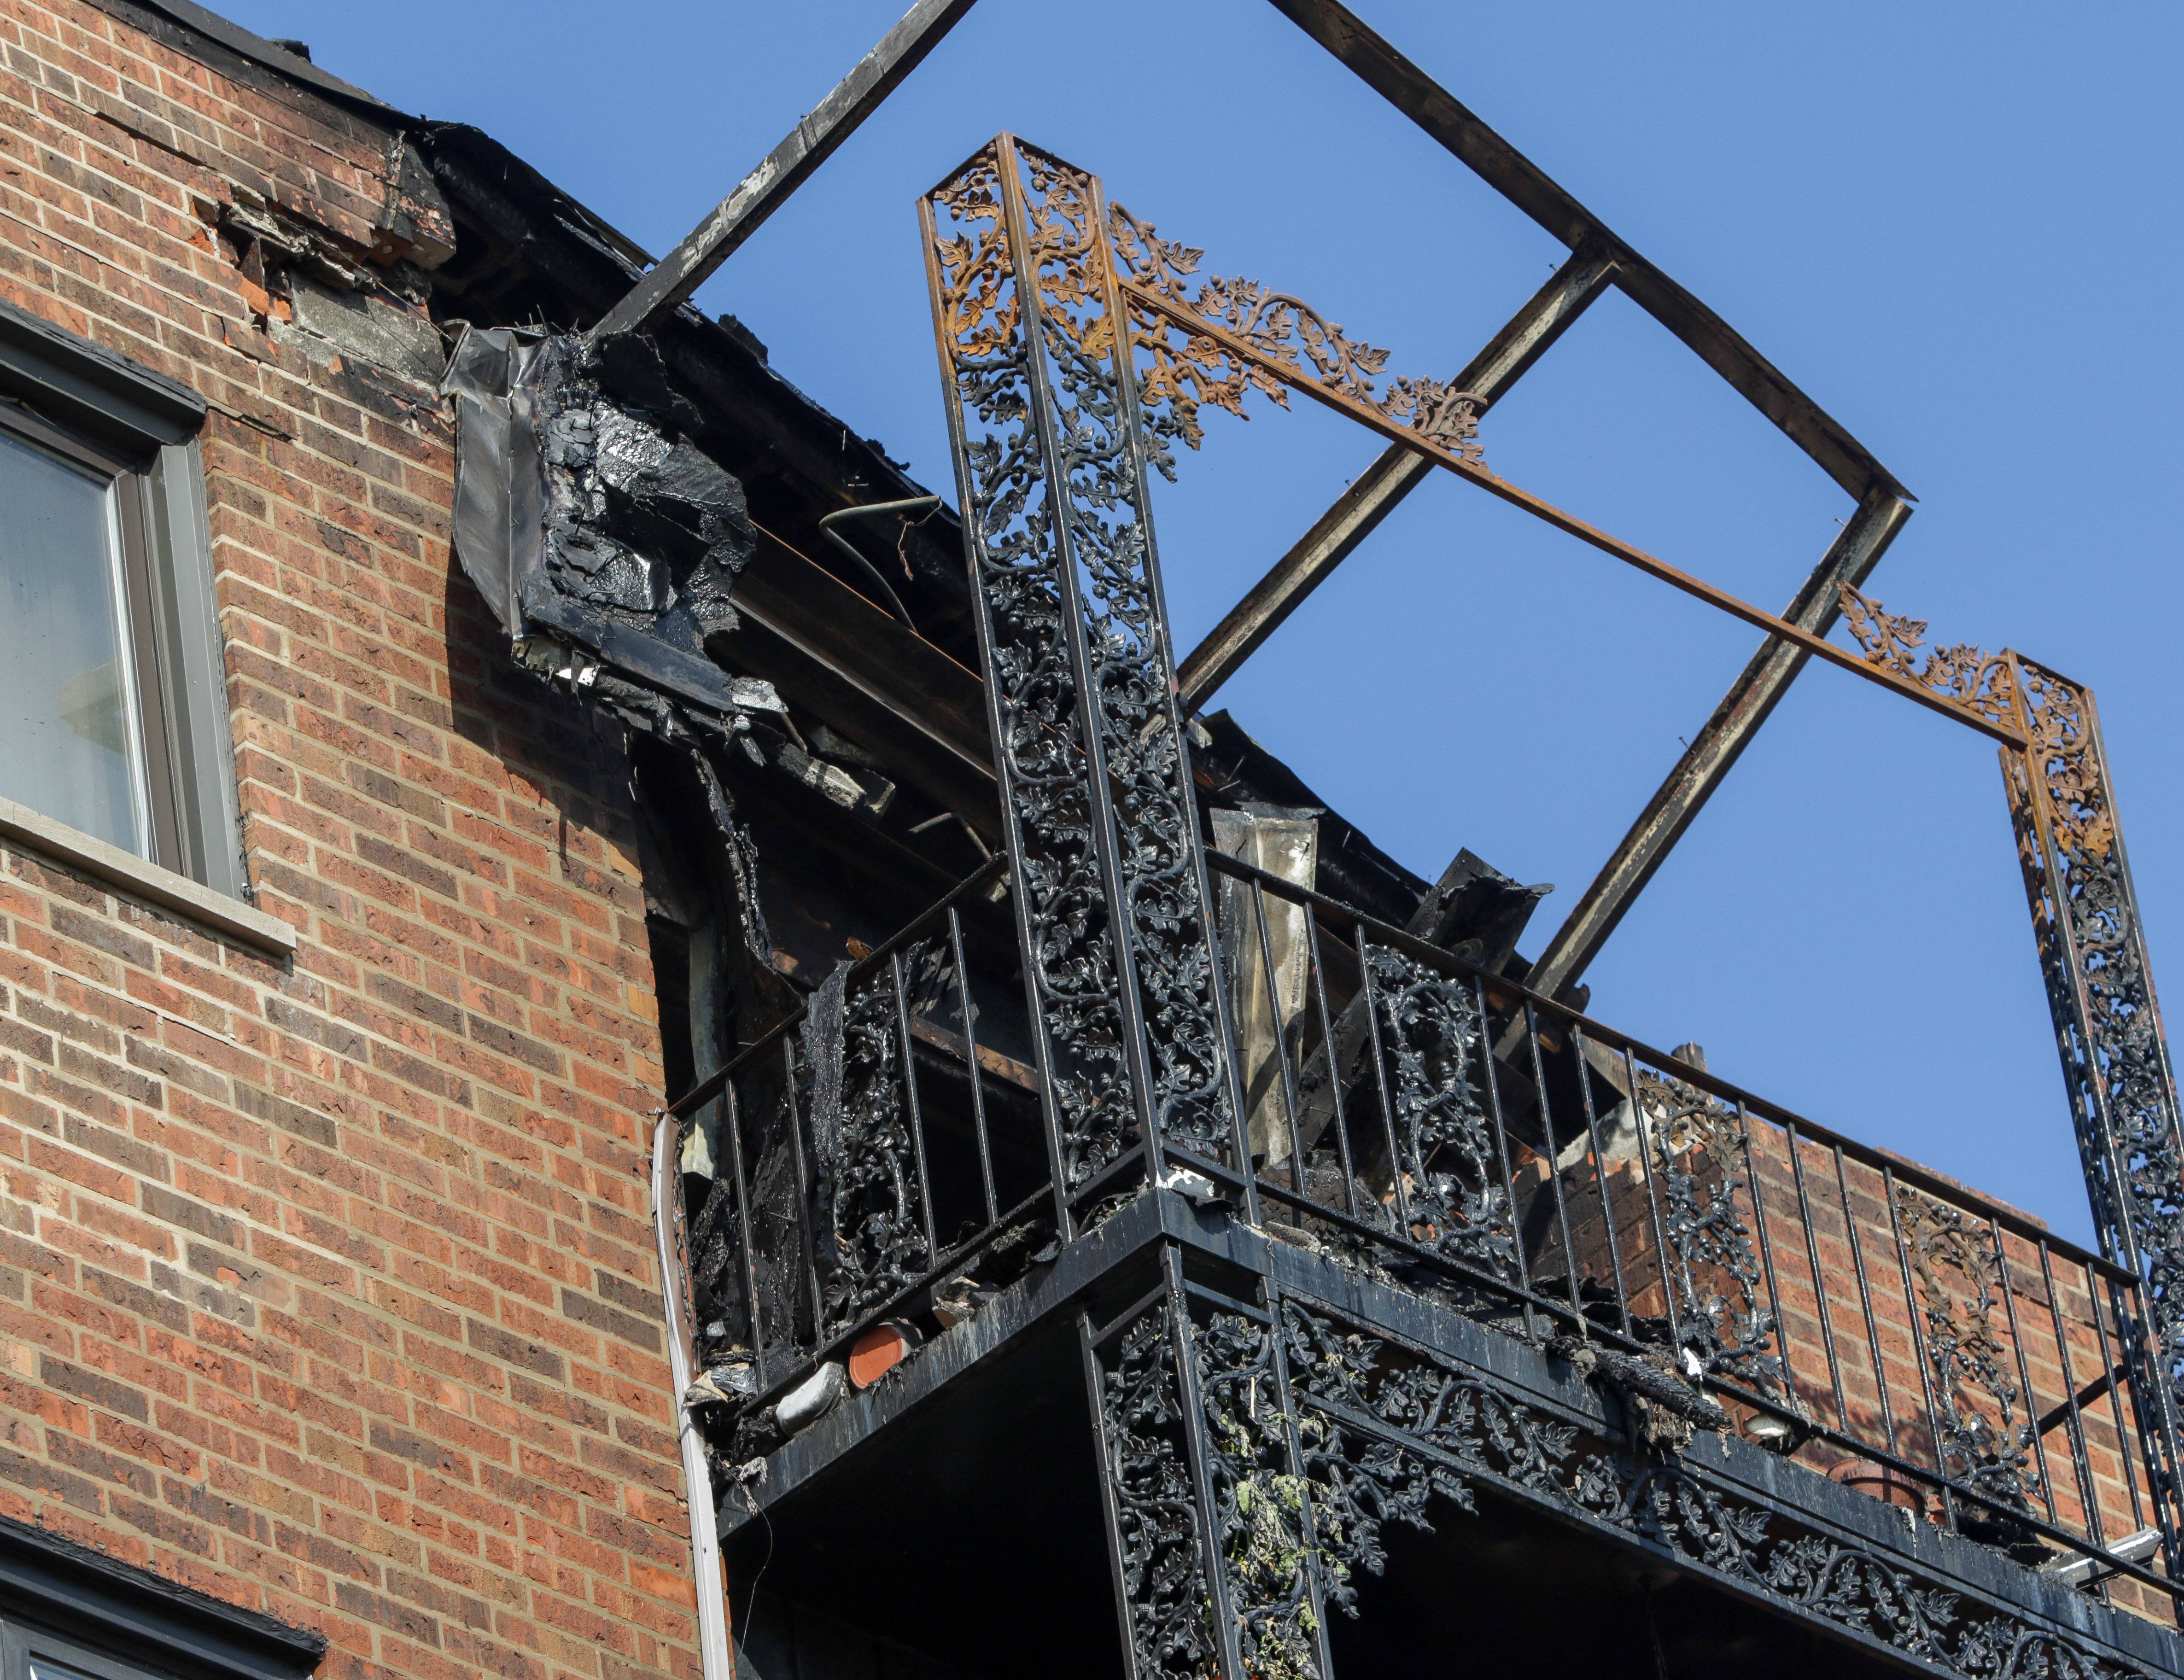 A charred sixth floor balcony shows the aftermath of a fire that ripped through a building Sunday at the Landings condominium complex near Des Plaines. An 85-year-old resident who lived on that floor died in the blaze.